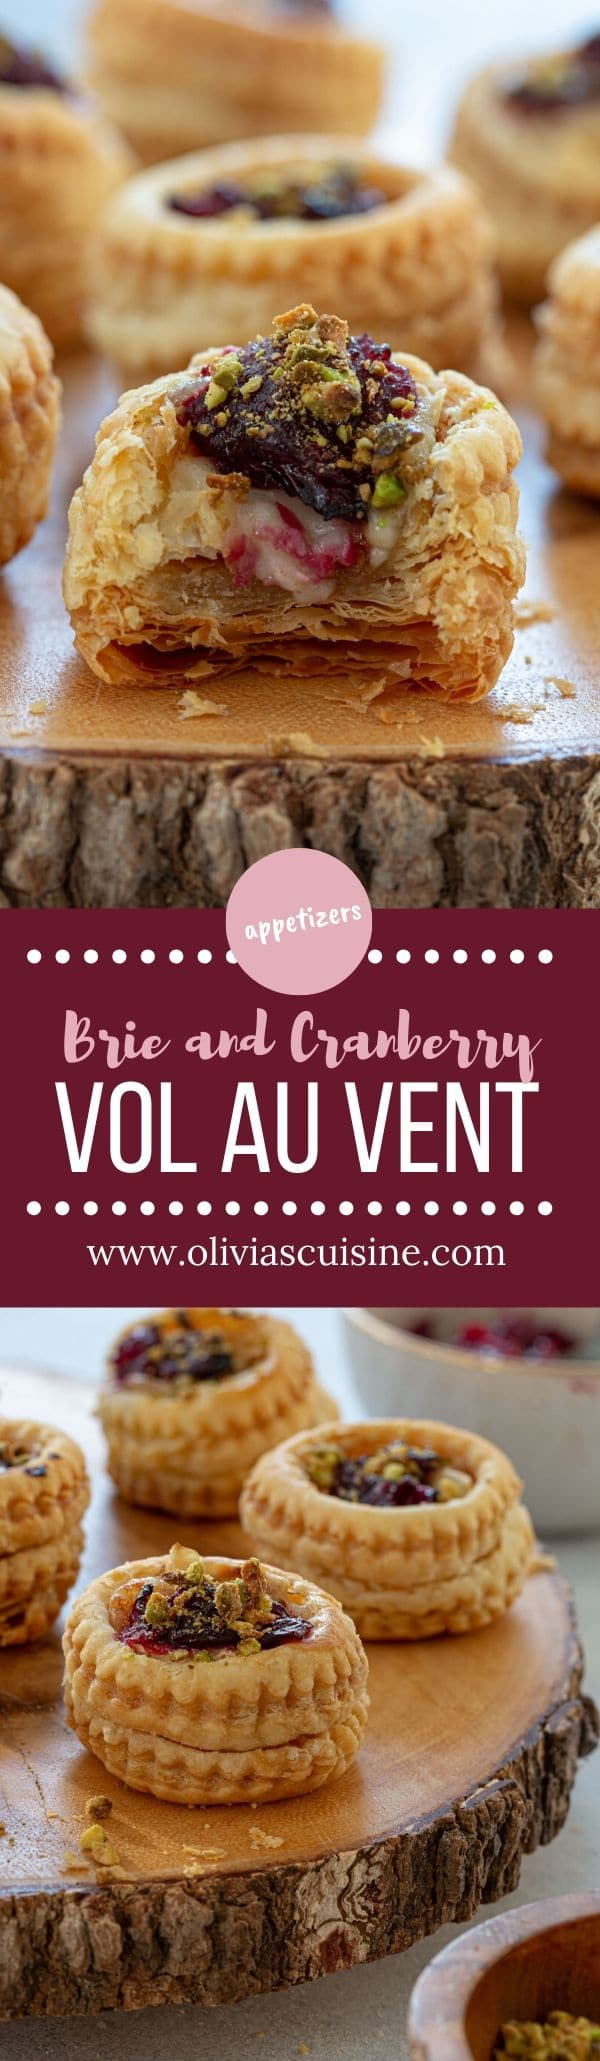 Brie and Cranberry Vol au Vent | www.oliviascuisine.com | Vol au vent might sound fancy, but is a simple and quick appetizer that is perfect for last minute entertaining! Also a great way to use all that leftover cranberry sauce from Thanksgiving. (Follow @oliviascuisine for more delicious recipes!) #volauvent #cranberry #appetizers #partyfood #puffpastry #christmas